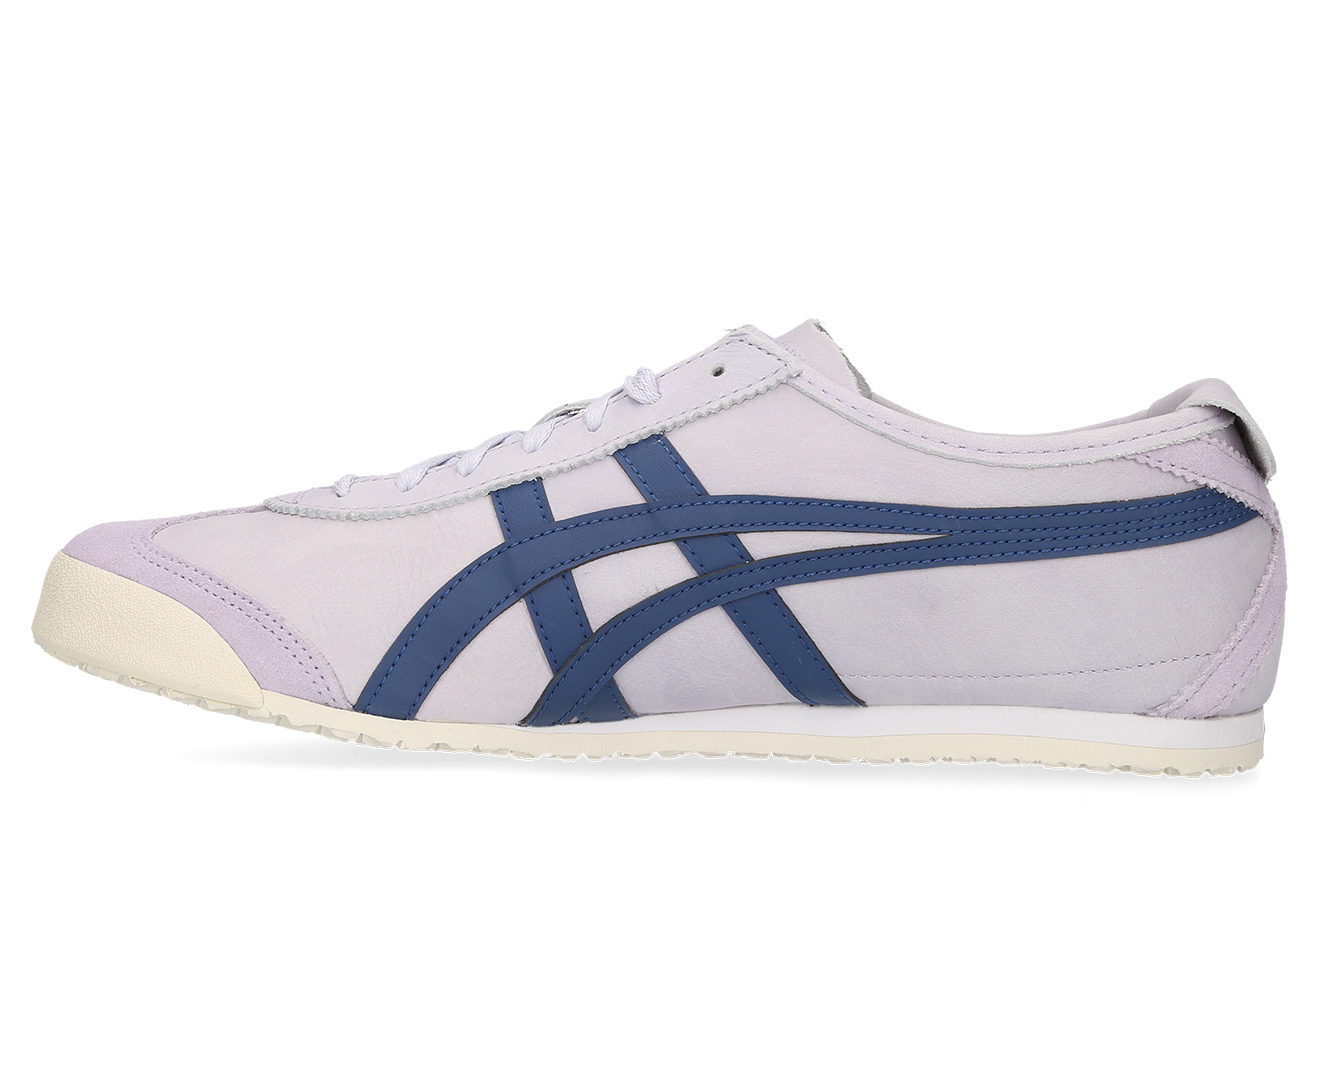 hot sale online 95ed3 22f35 Onitsuka Tiger Unisex Mexico 66 Shoe - Lilac Opal/Midnight Blue